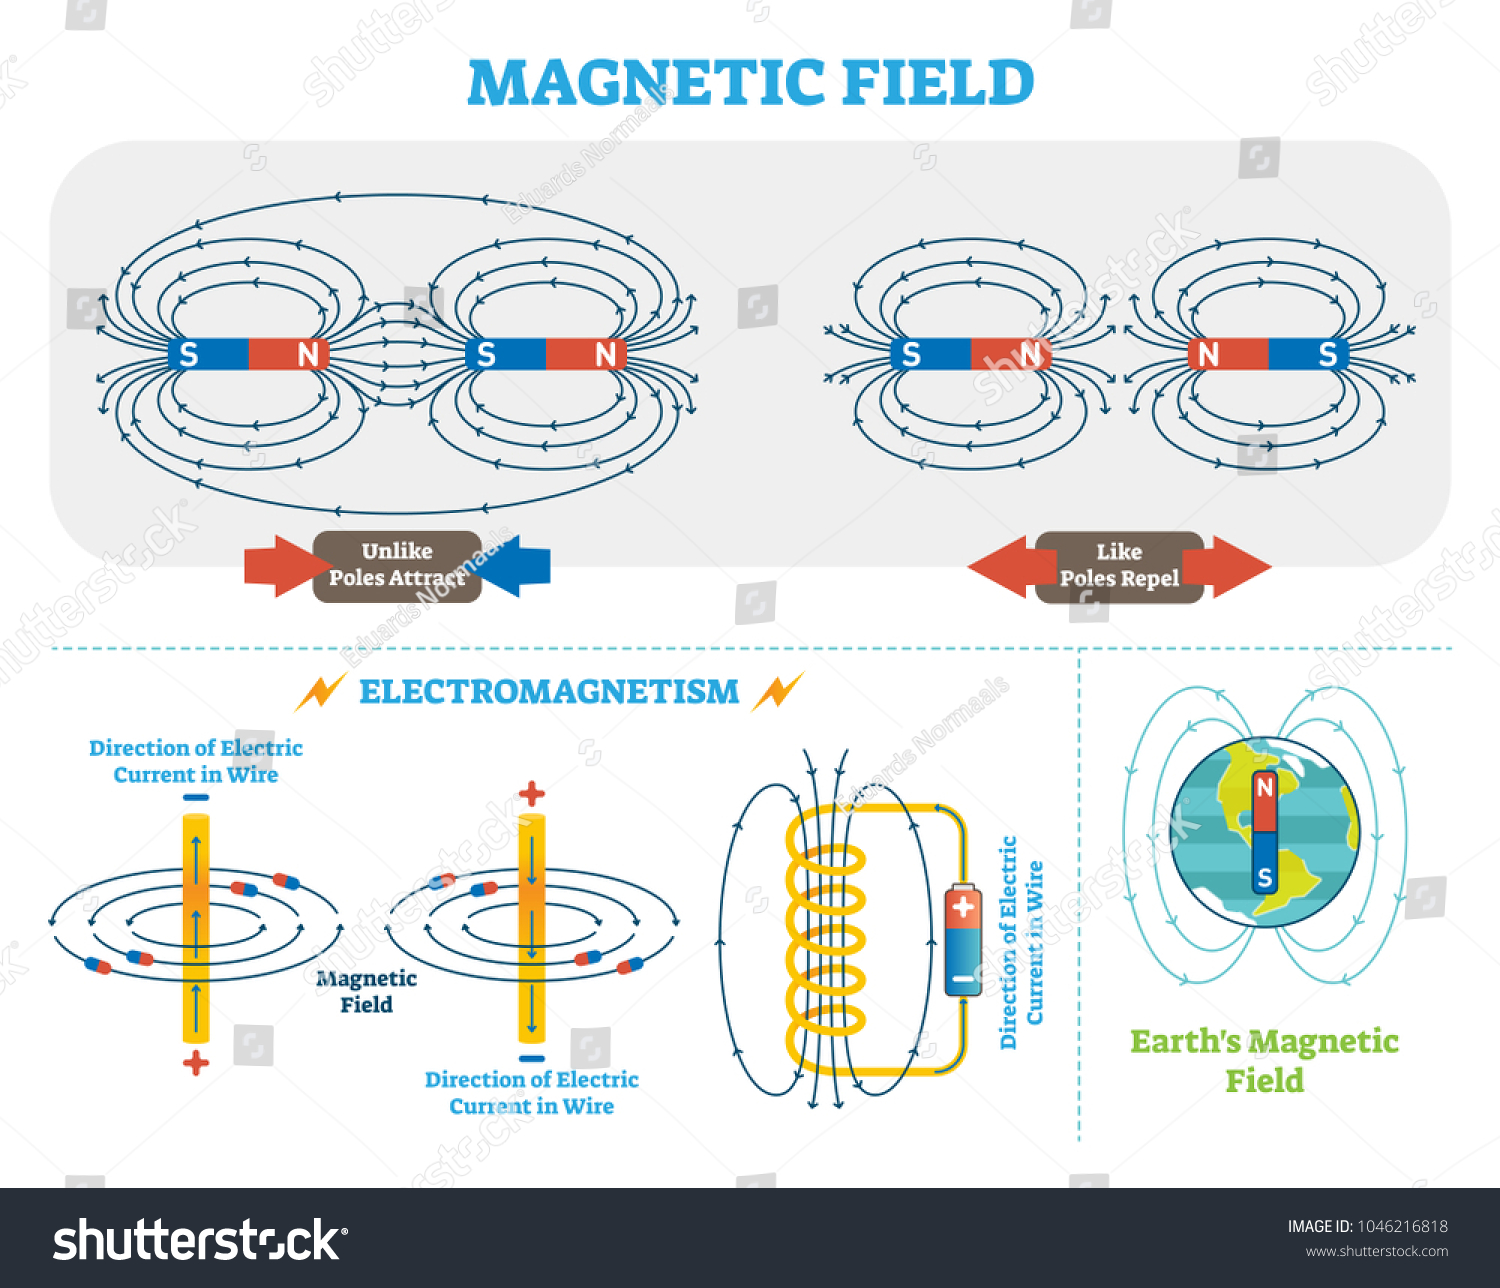 Electricity Magnetic Field Diagram Trusted Wiring Diagrams Simple Electric Motor Schoolphysics Welcome Scientific Electromagnetism Vector Illustration Stock Bar Between Two Magnets